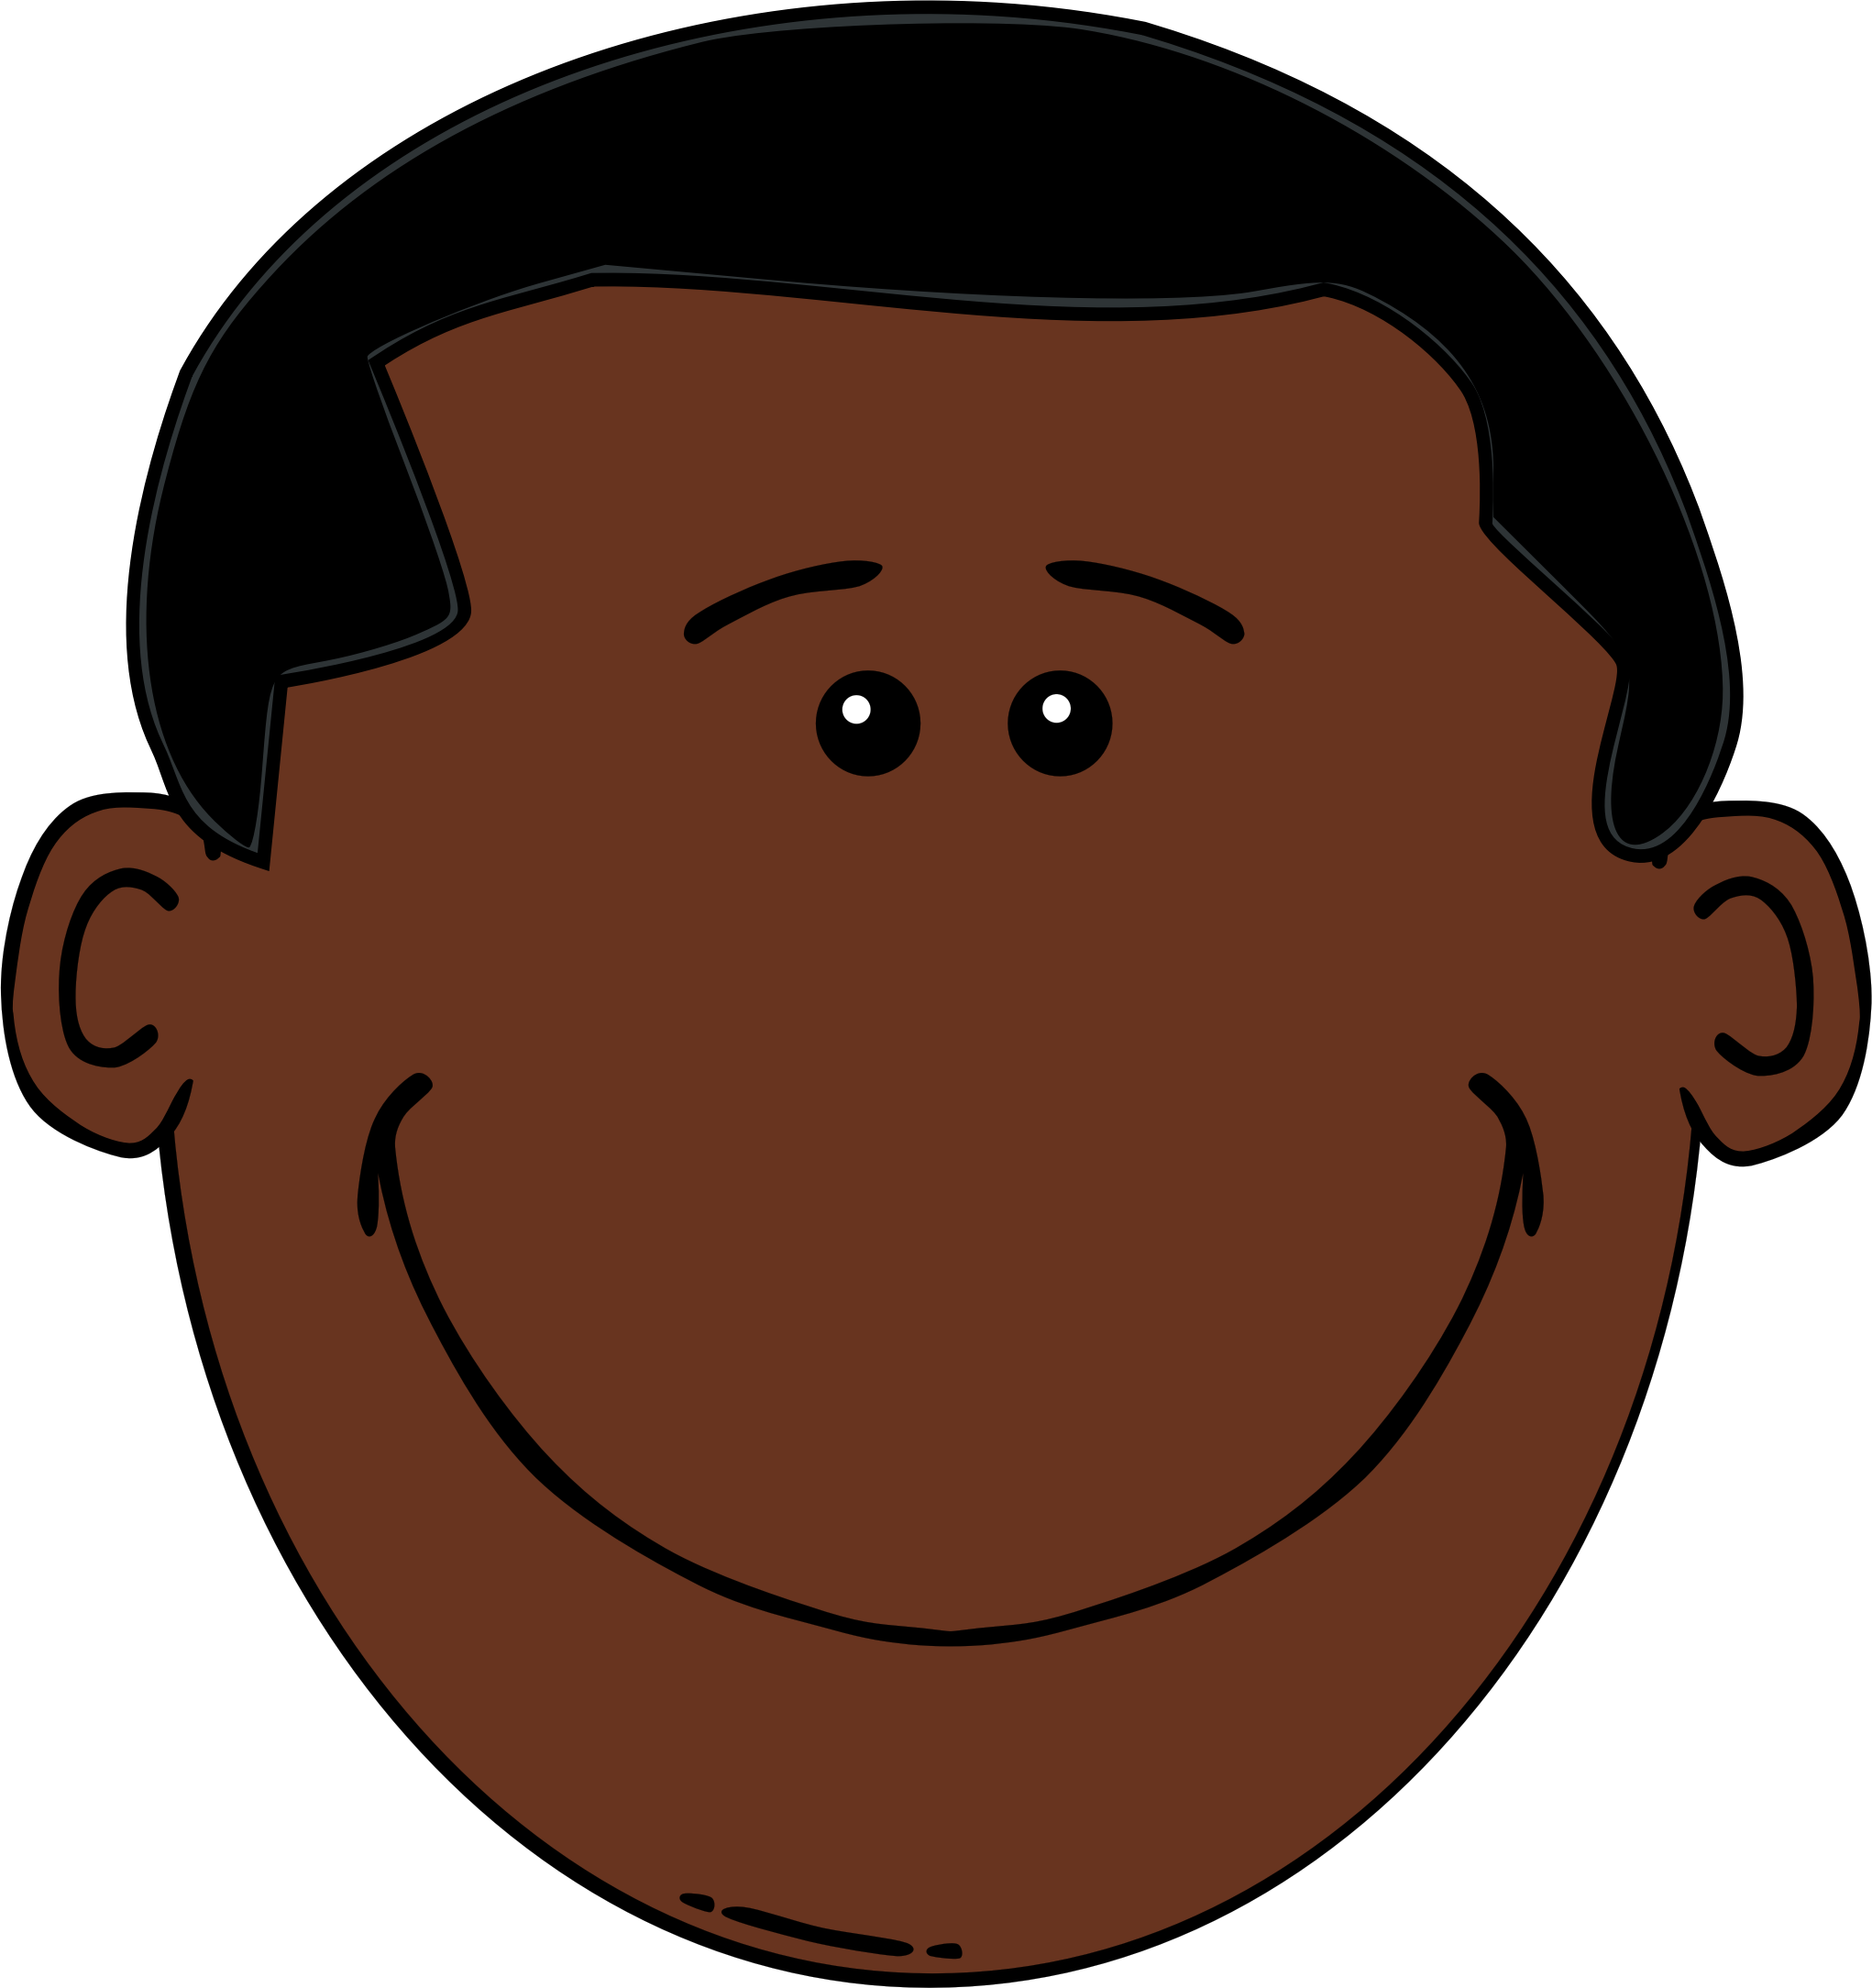 Black face png. Boy icons free and